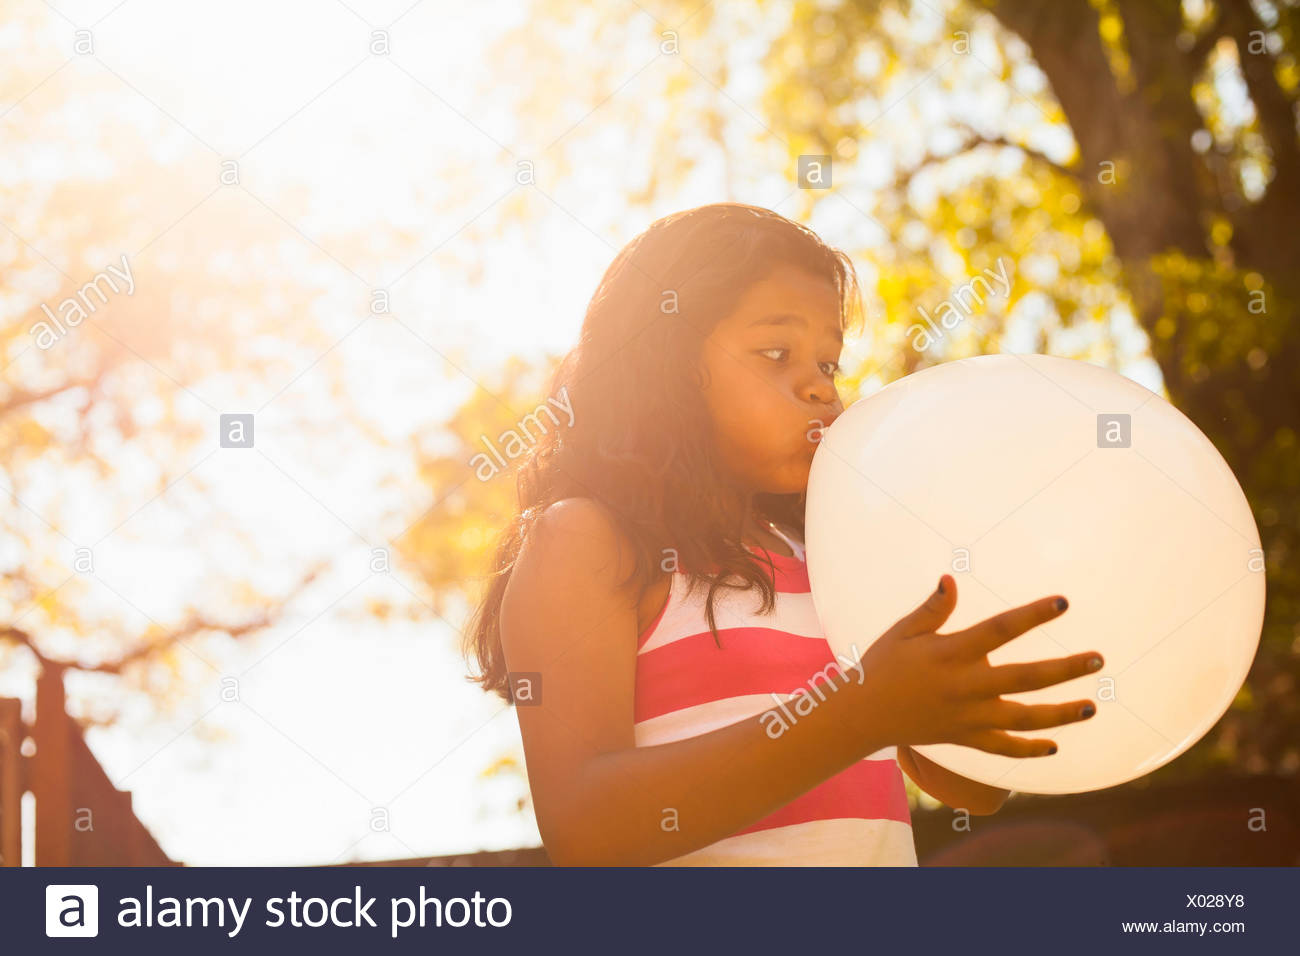 Girl blowing up balloon in garden - Stock Image